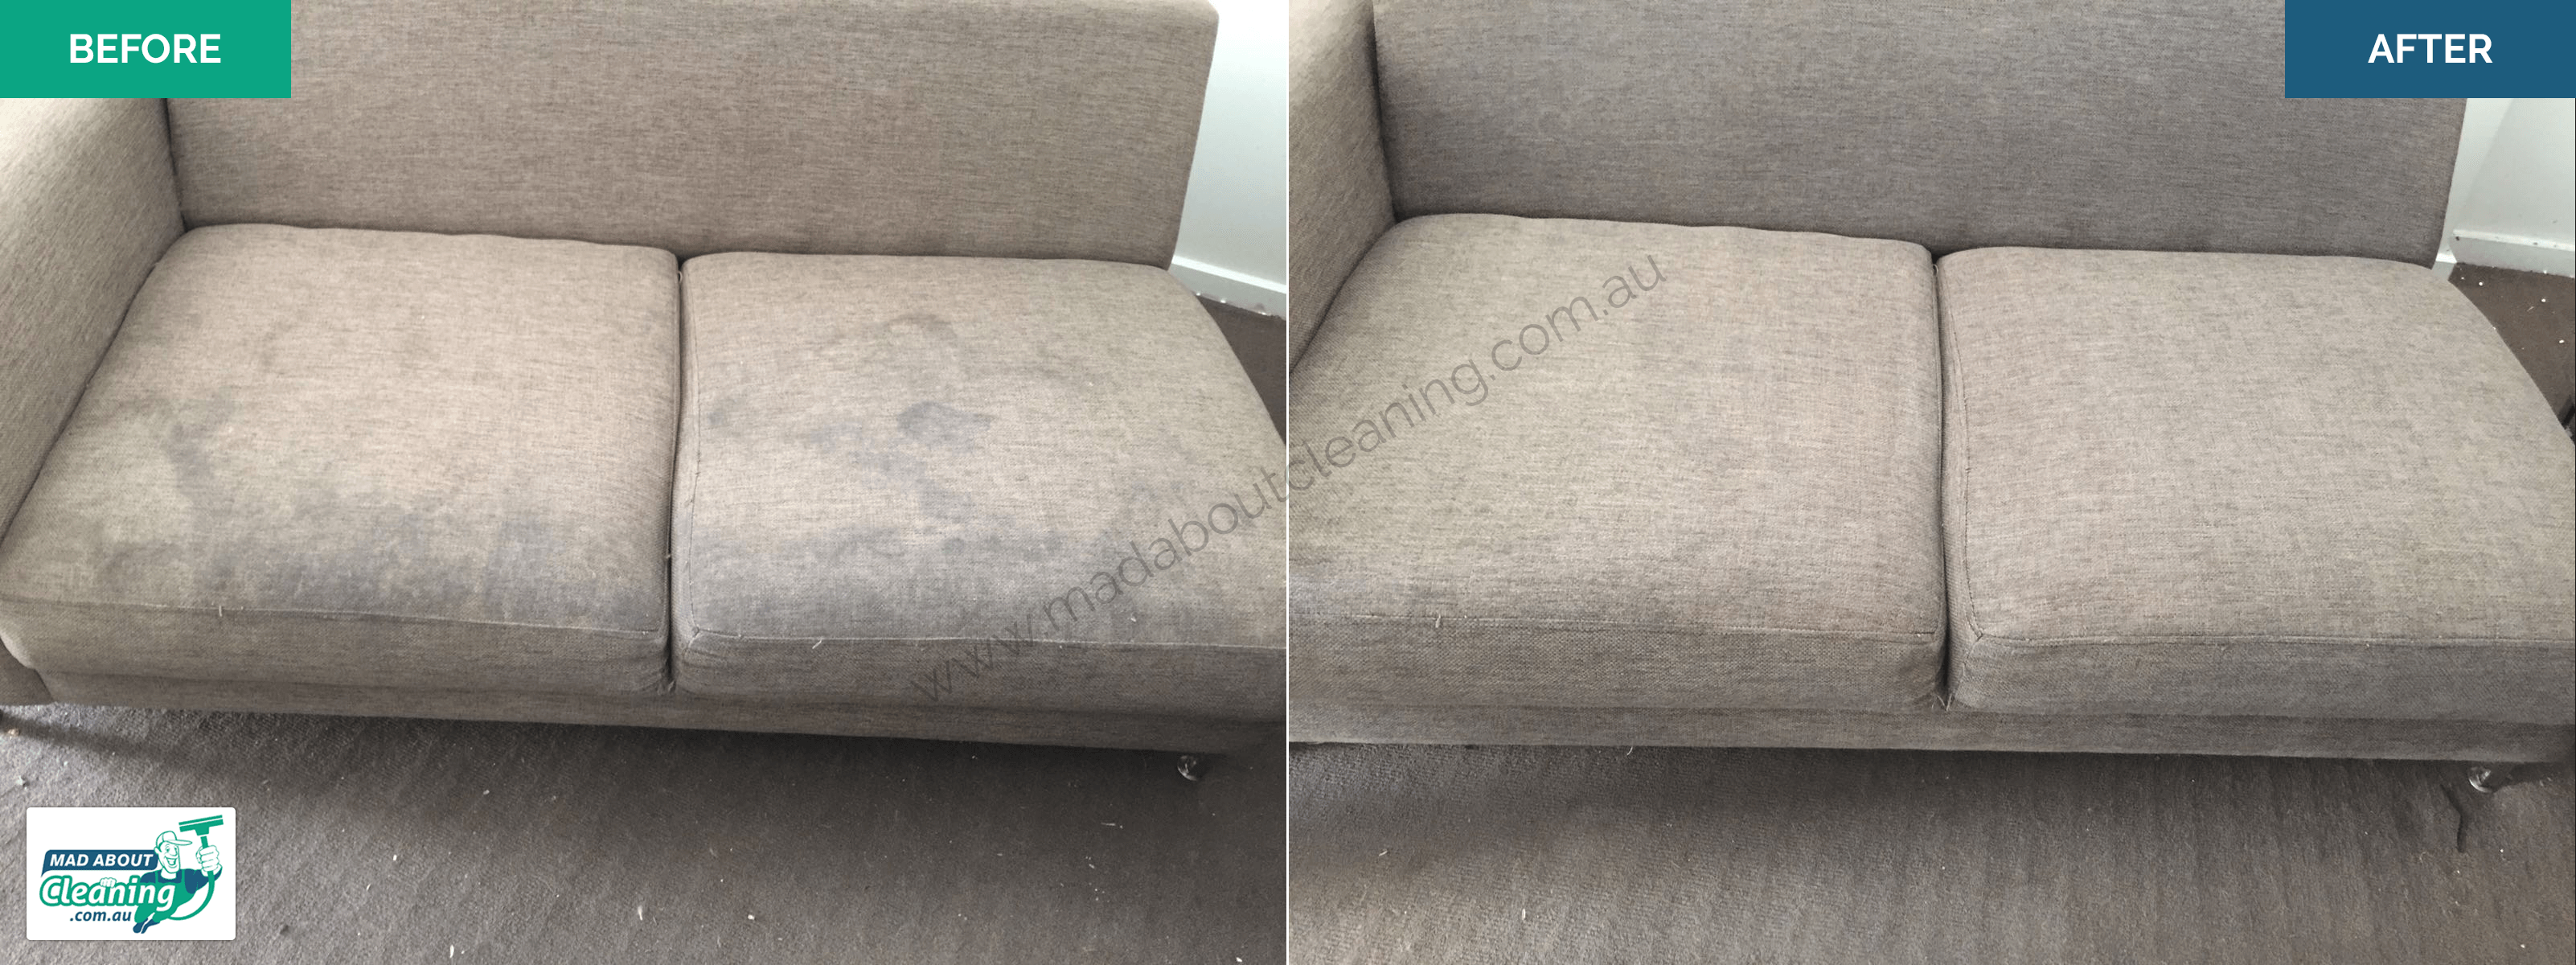 Upholstery Cleaning Melbourne Upholstery Leather Cleaning